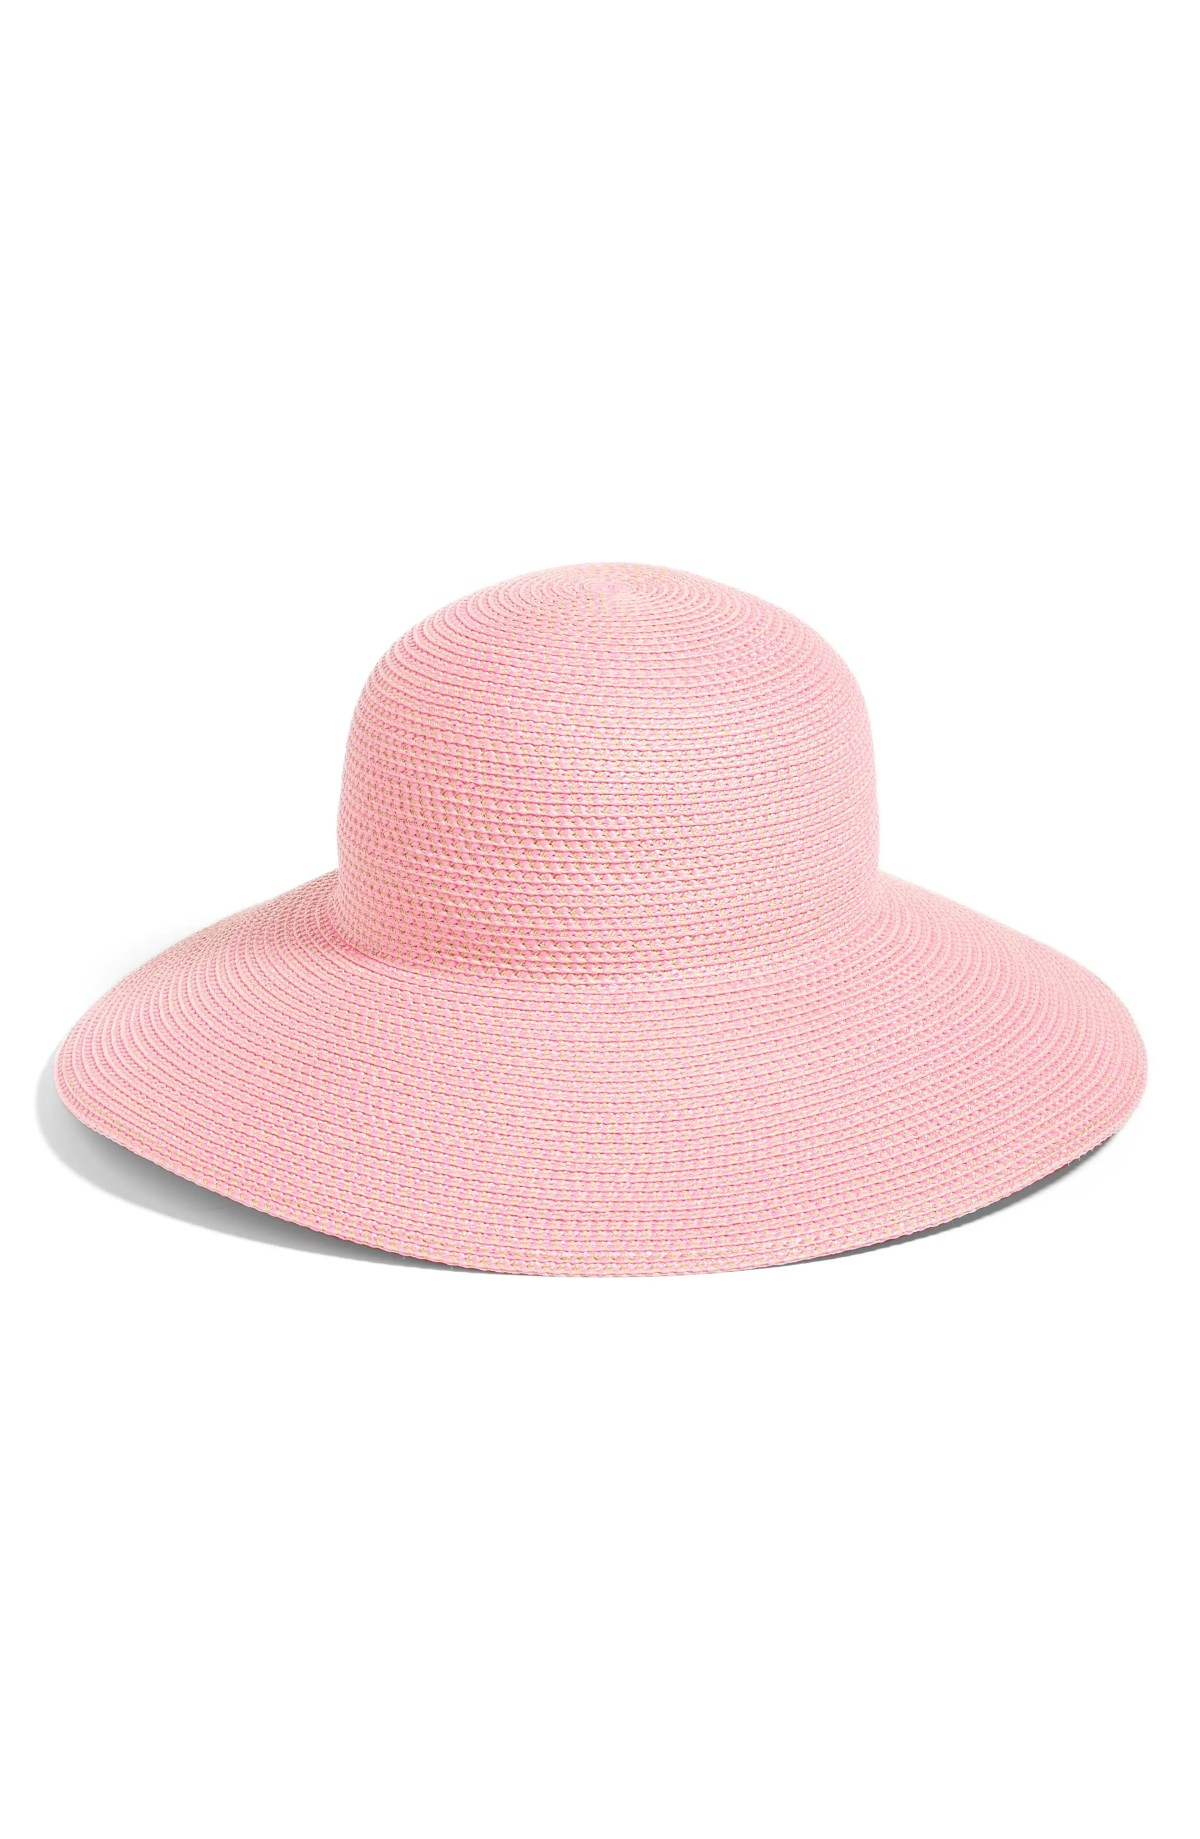 'Hampton' Straw Sun Hat, Main, color, POP PINK